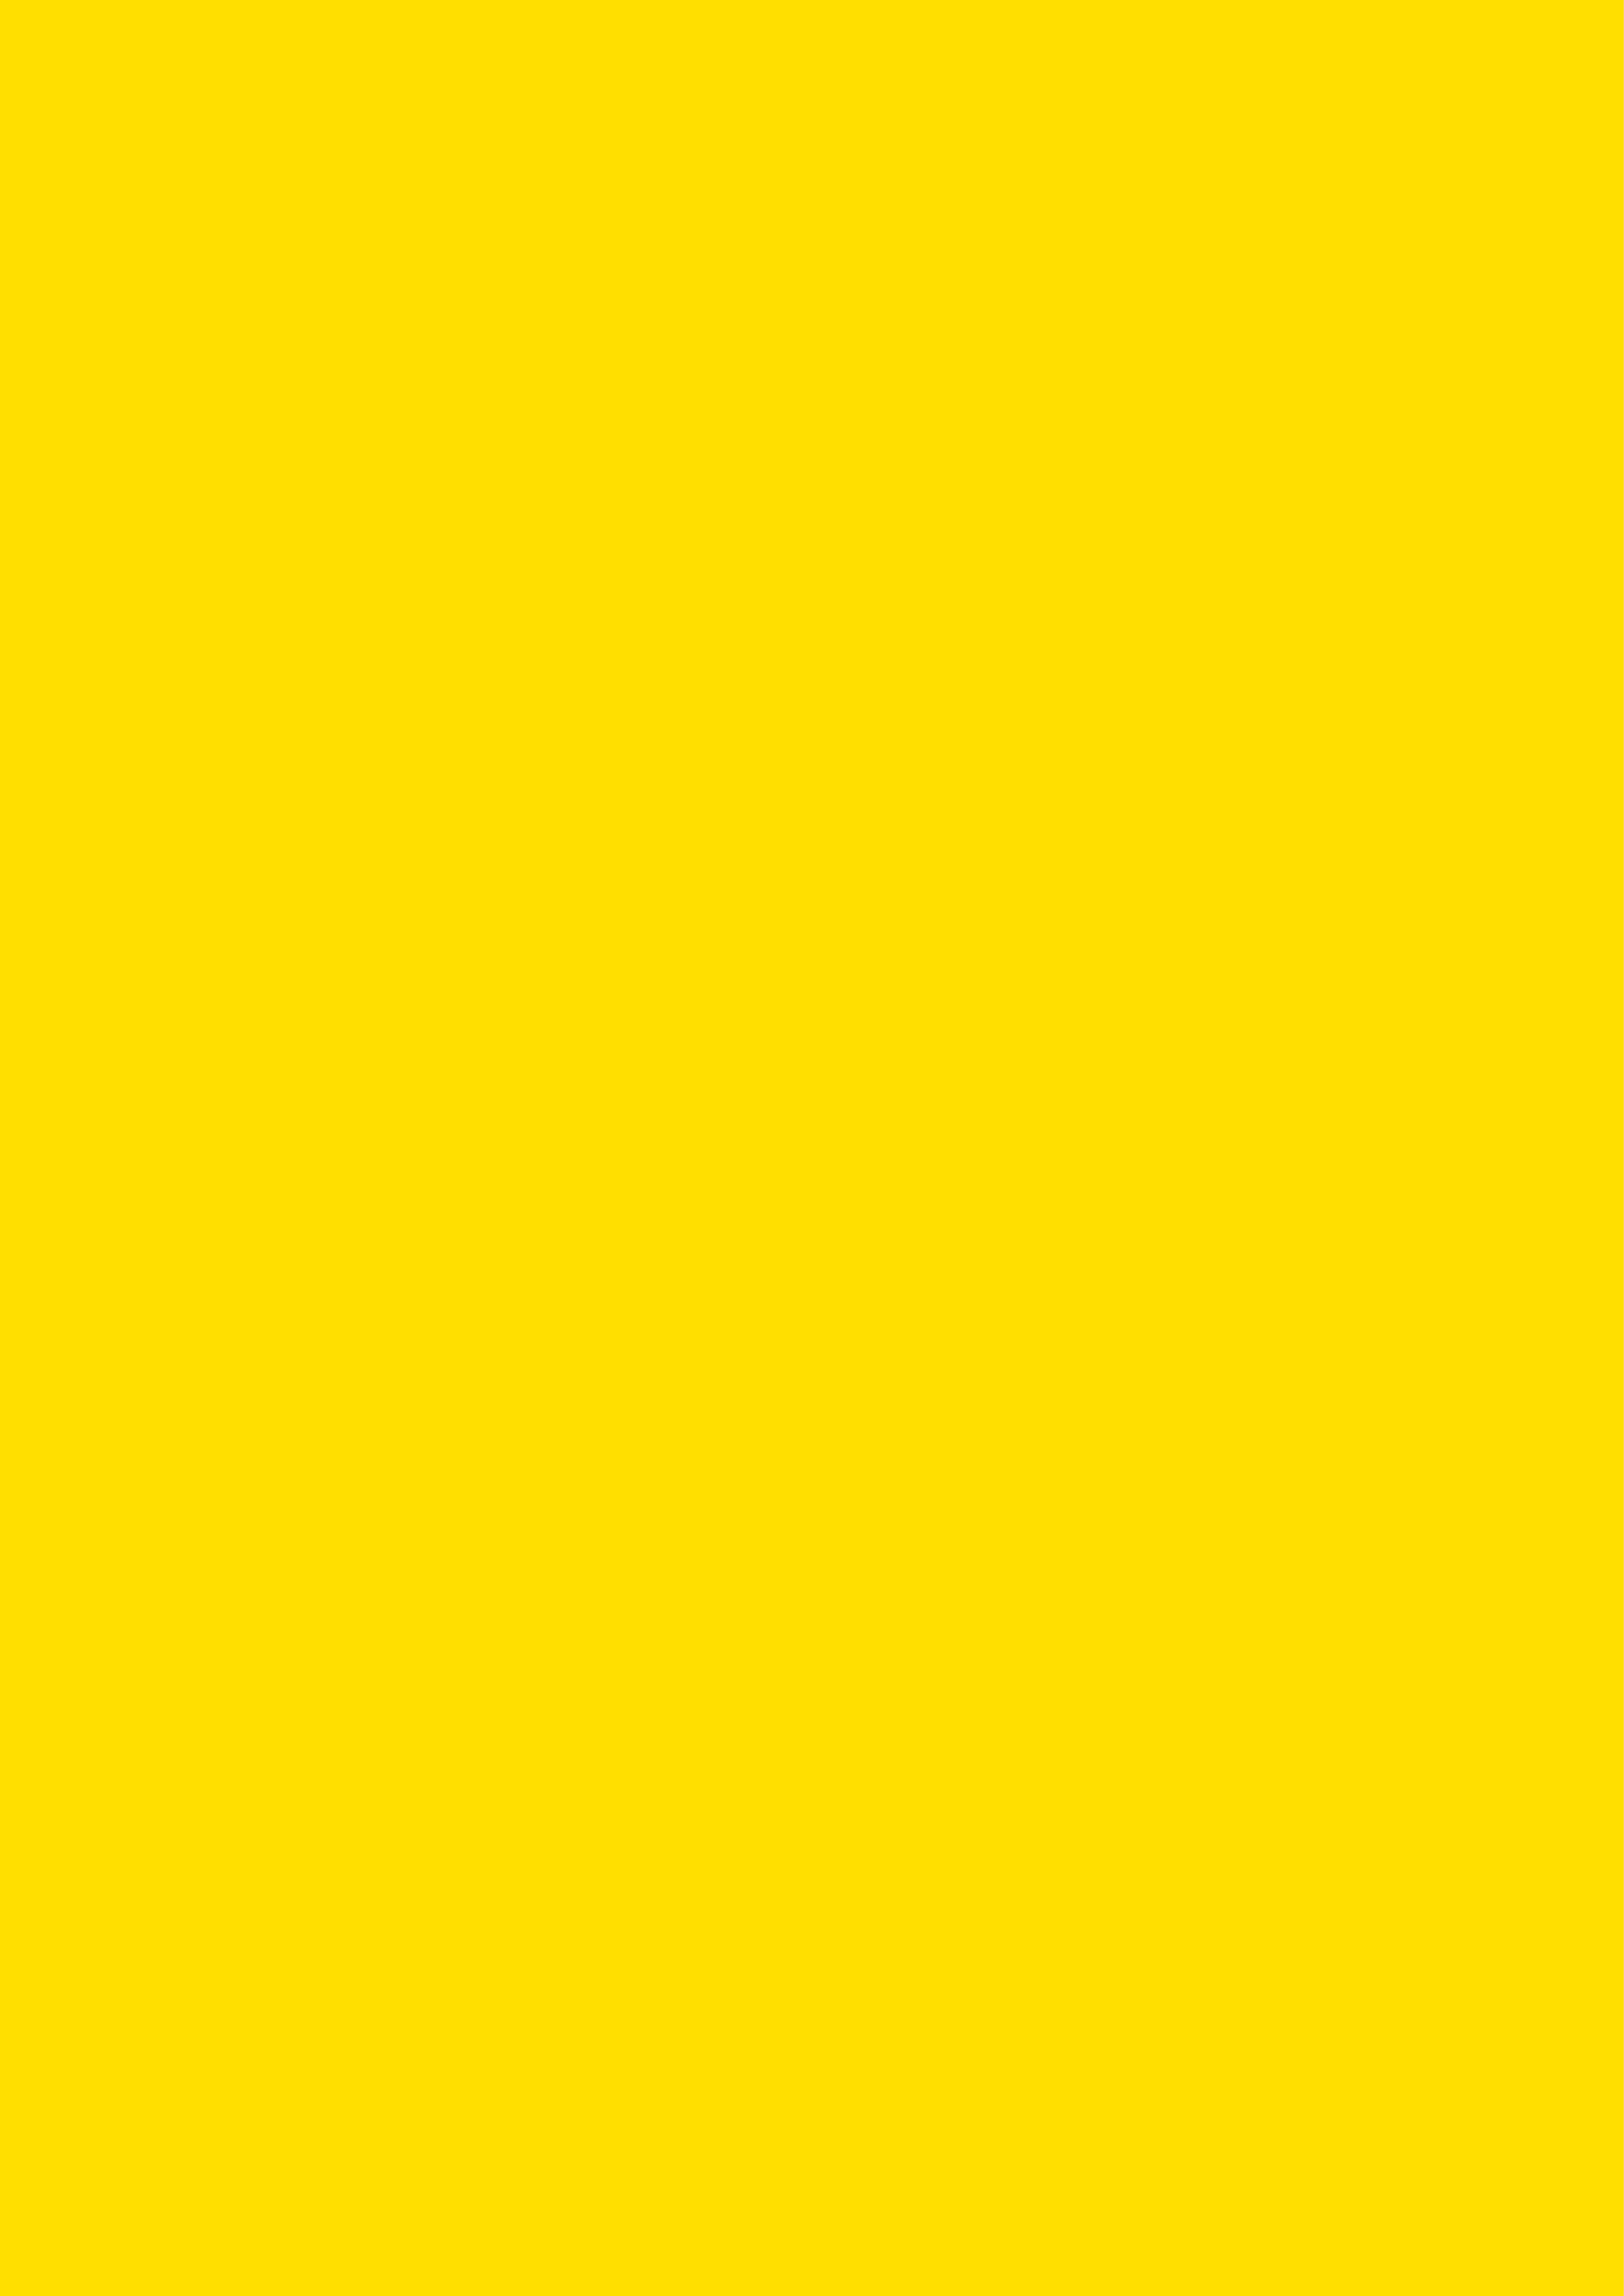 2480x3508 Golden Yellow Solid Color Background